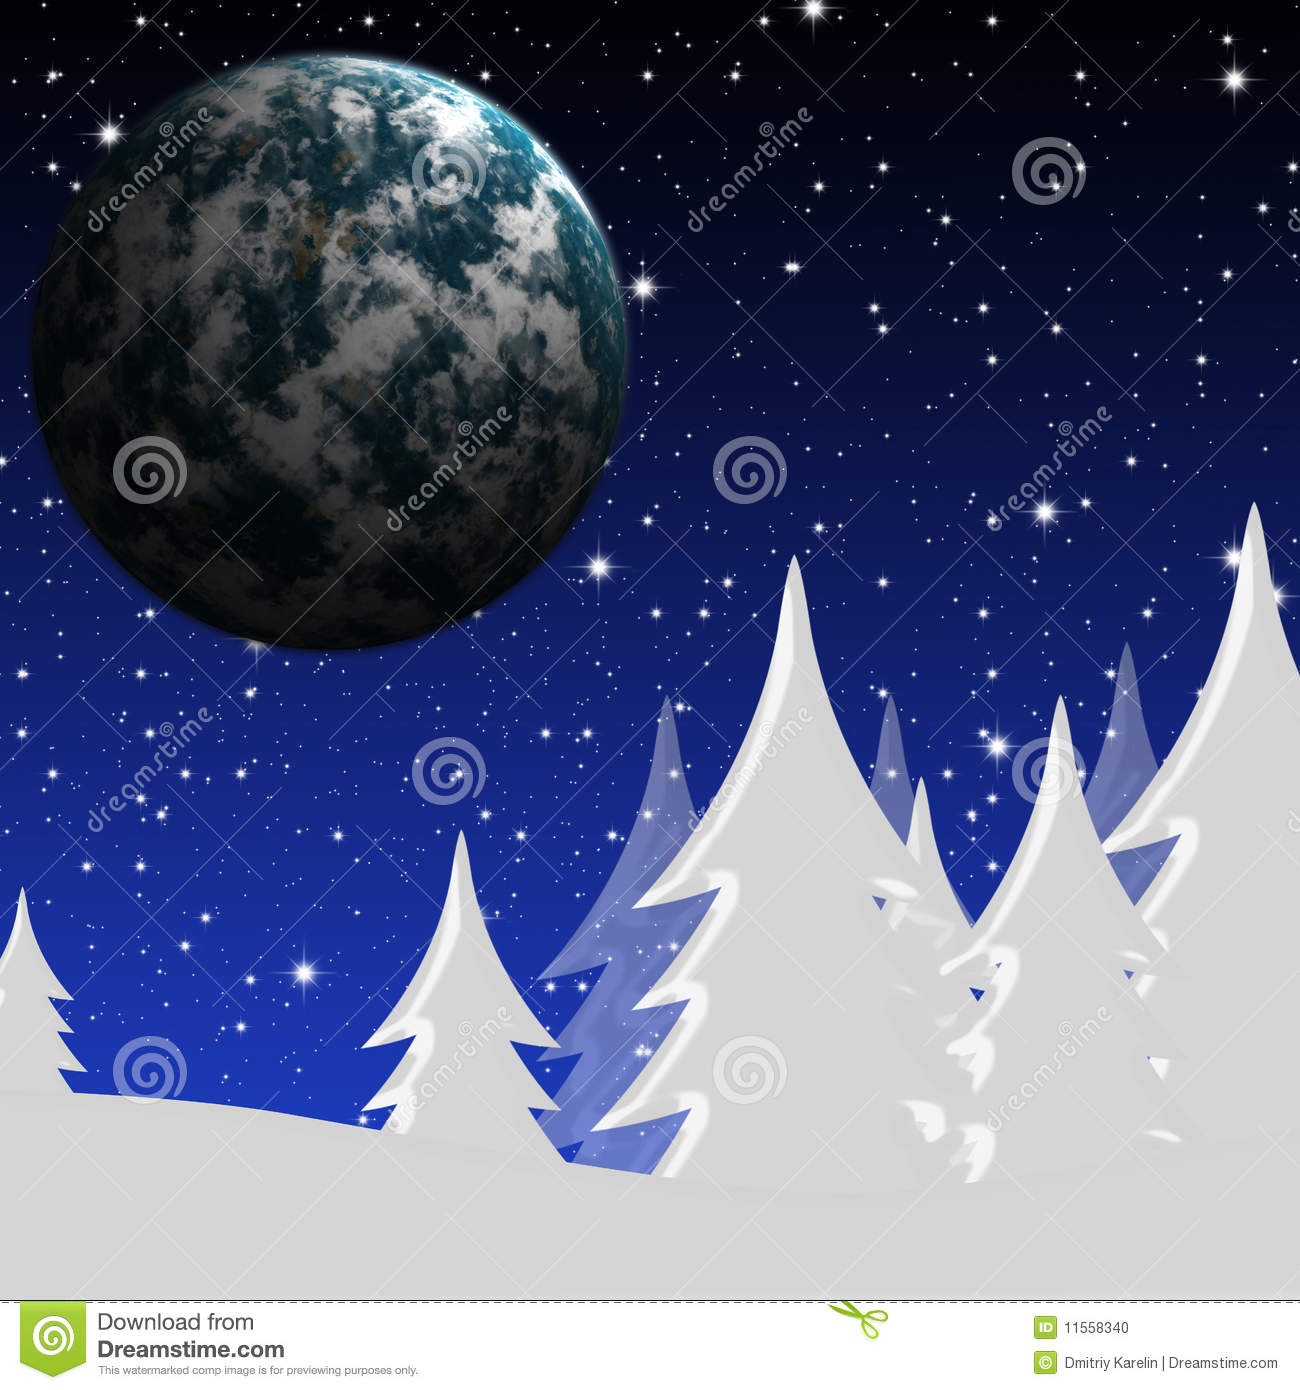 winter night sky planets - photo #21